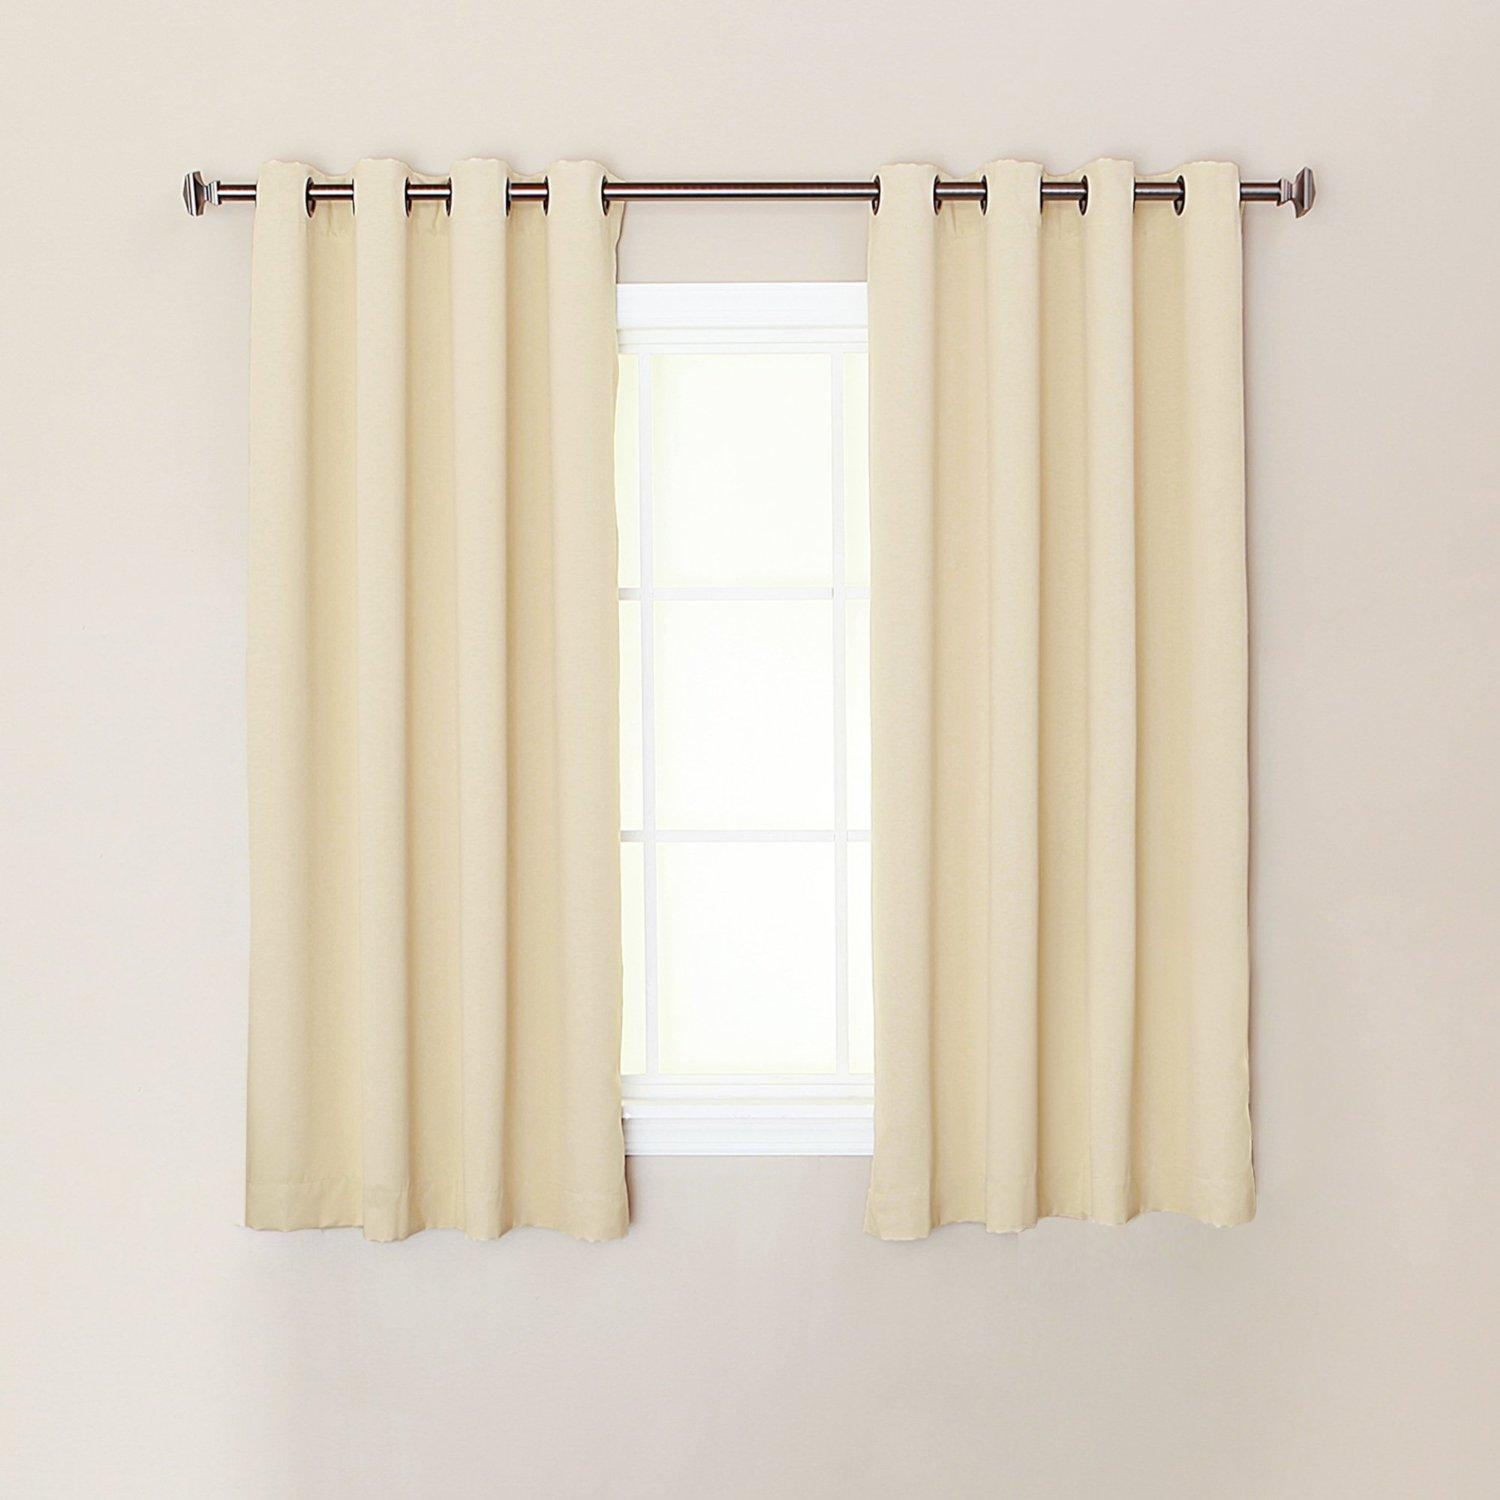 Best Home Fashion Thermal Insulated Blackout Curtains Antique Bronze Grommet Top Beige - 52